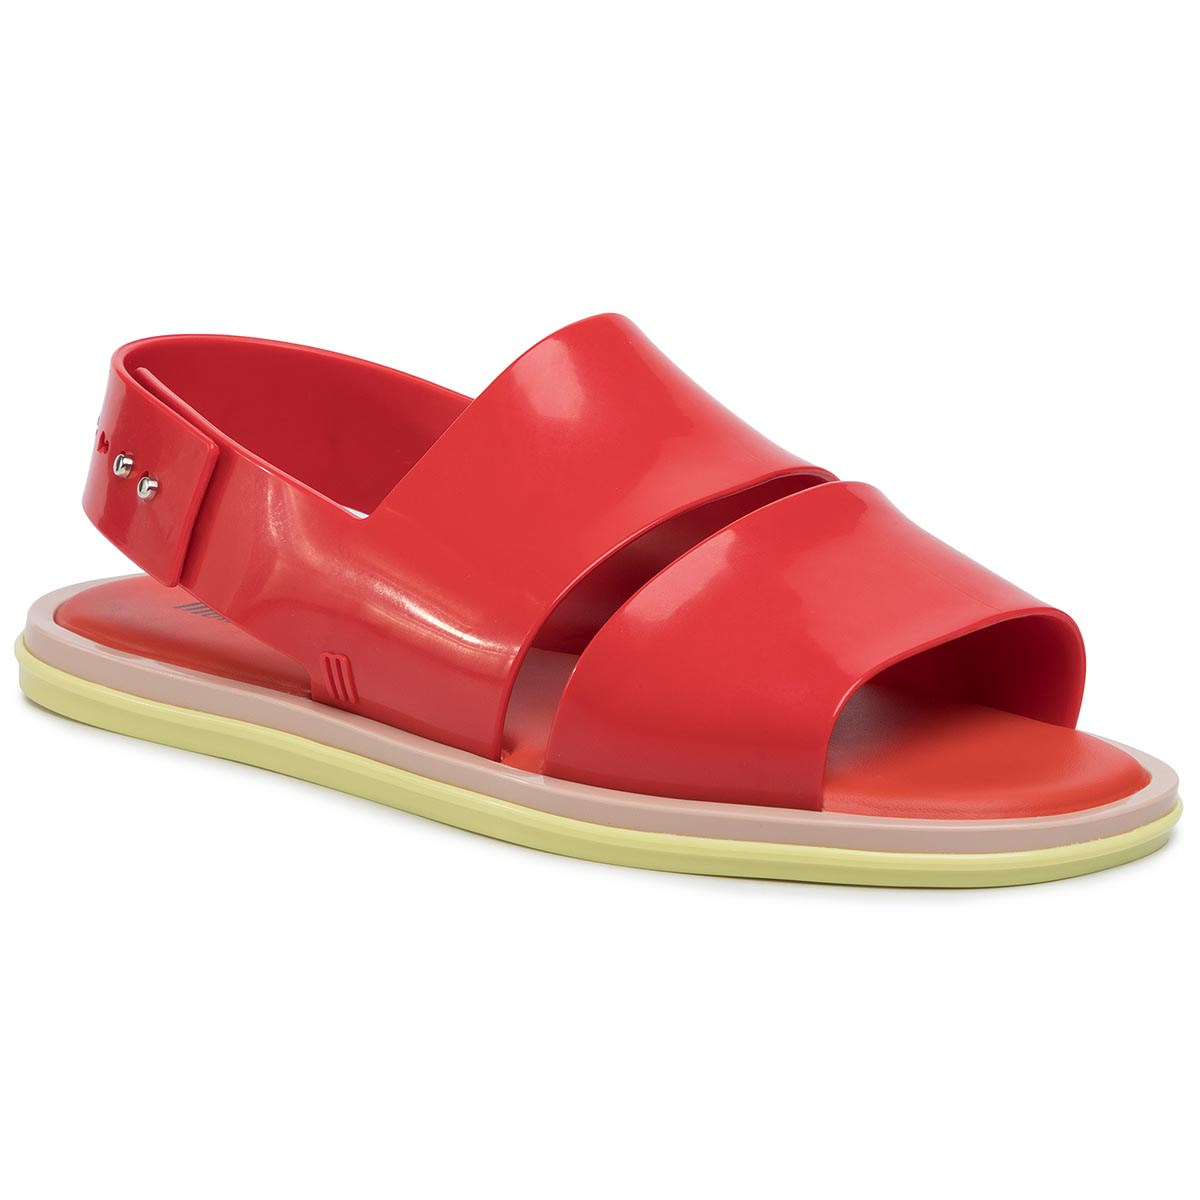 Sandale MELISSA - Carbon Ad 32688 Red/Yellow/Beige 53613